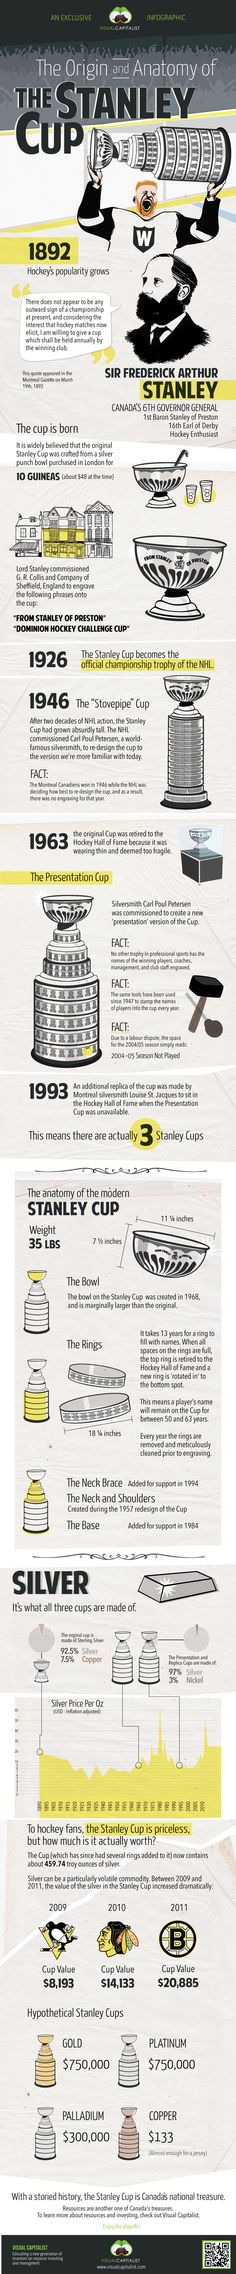 The Origin and Anatomy of The Stanley Cup.